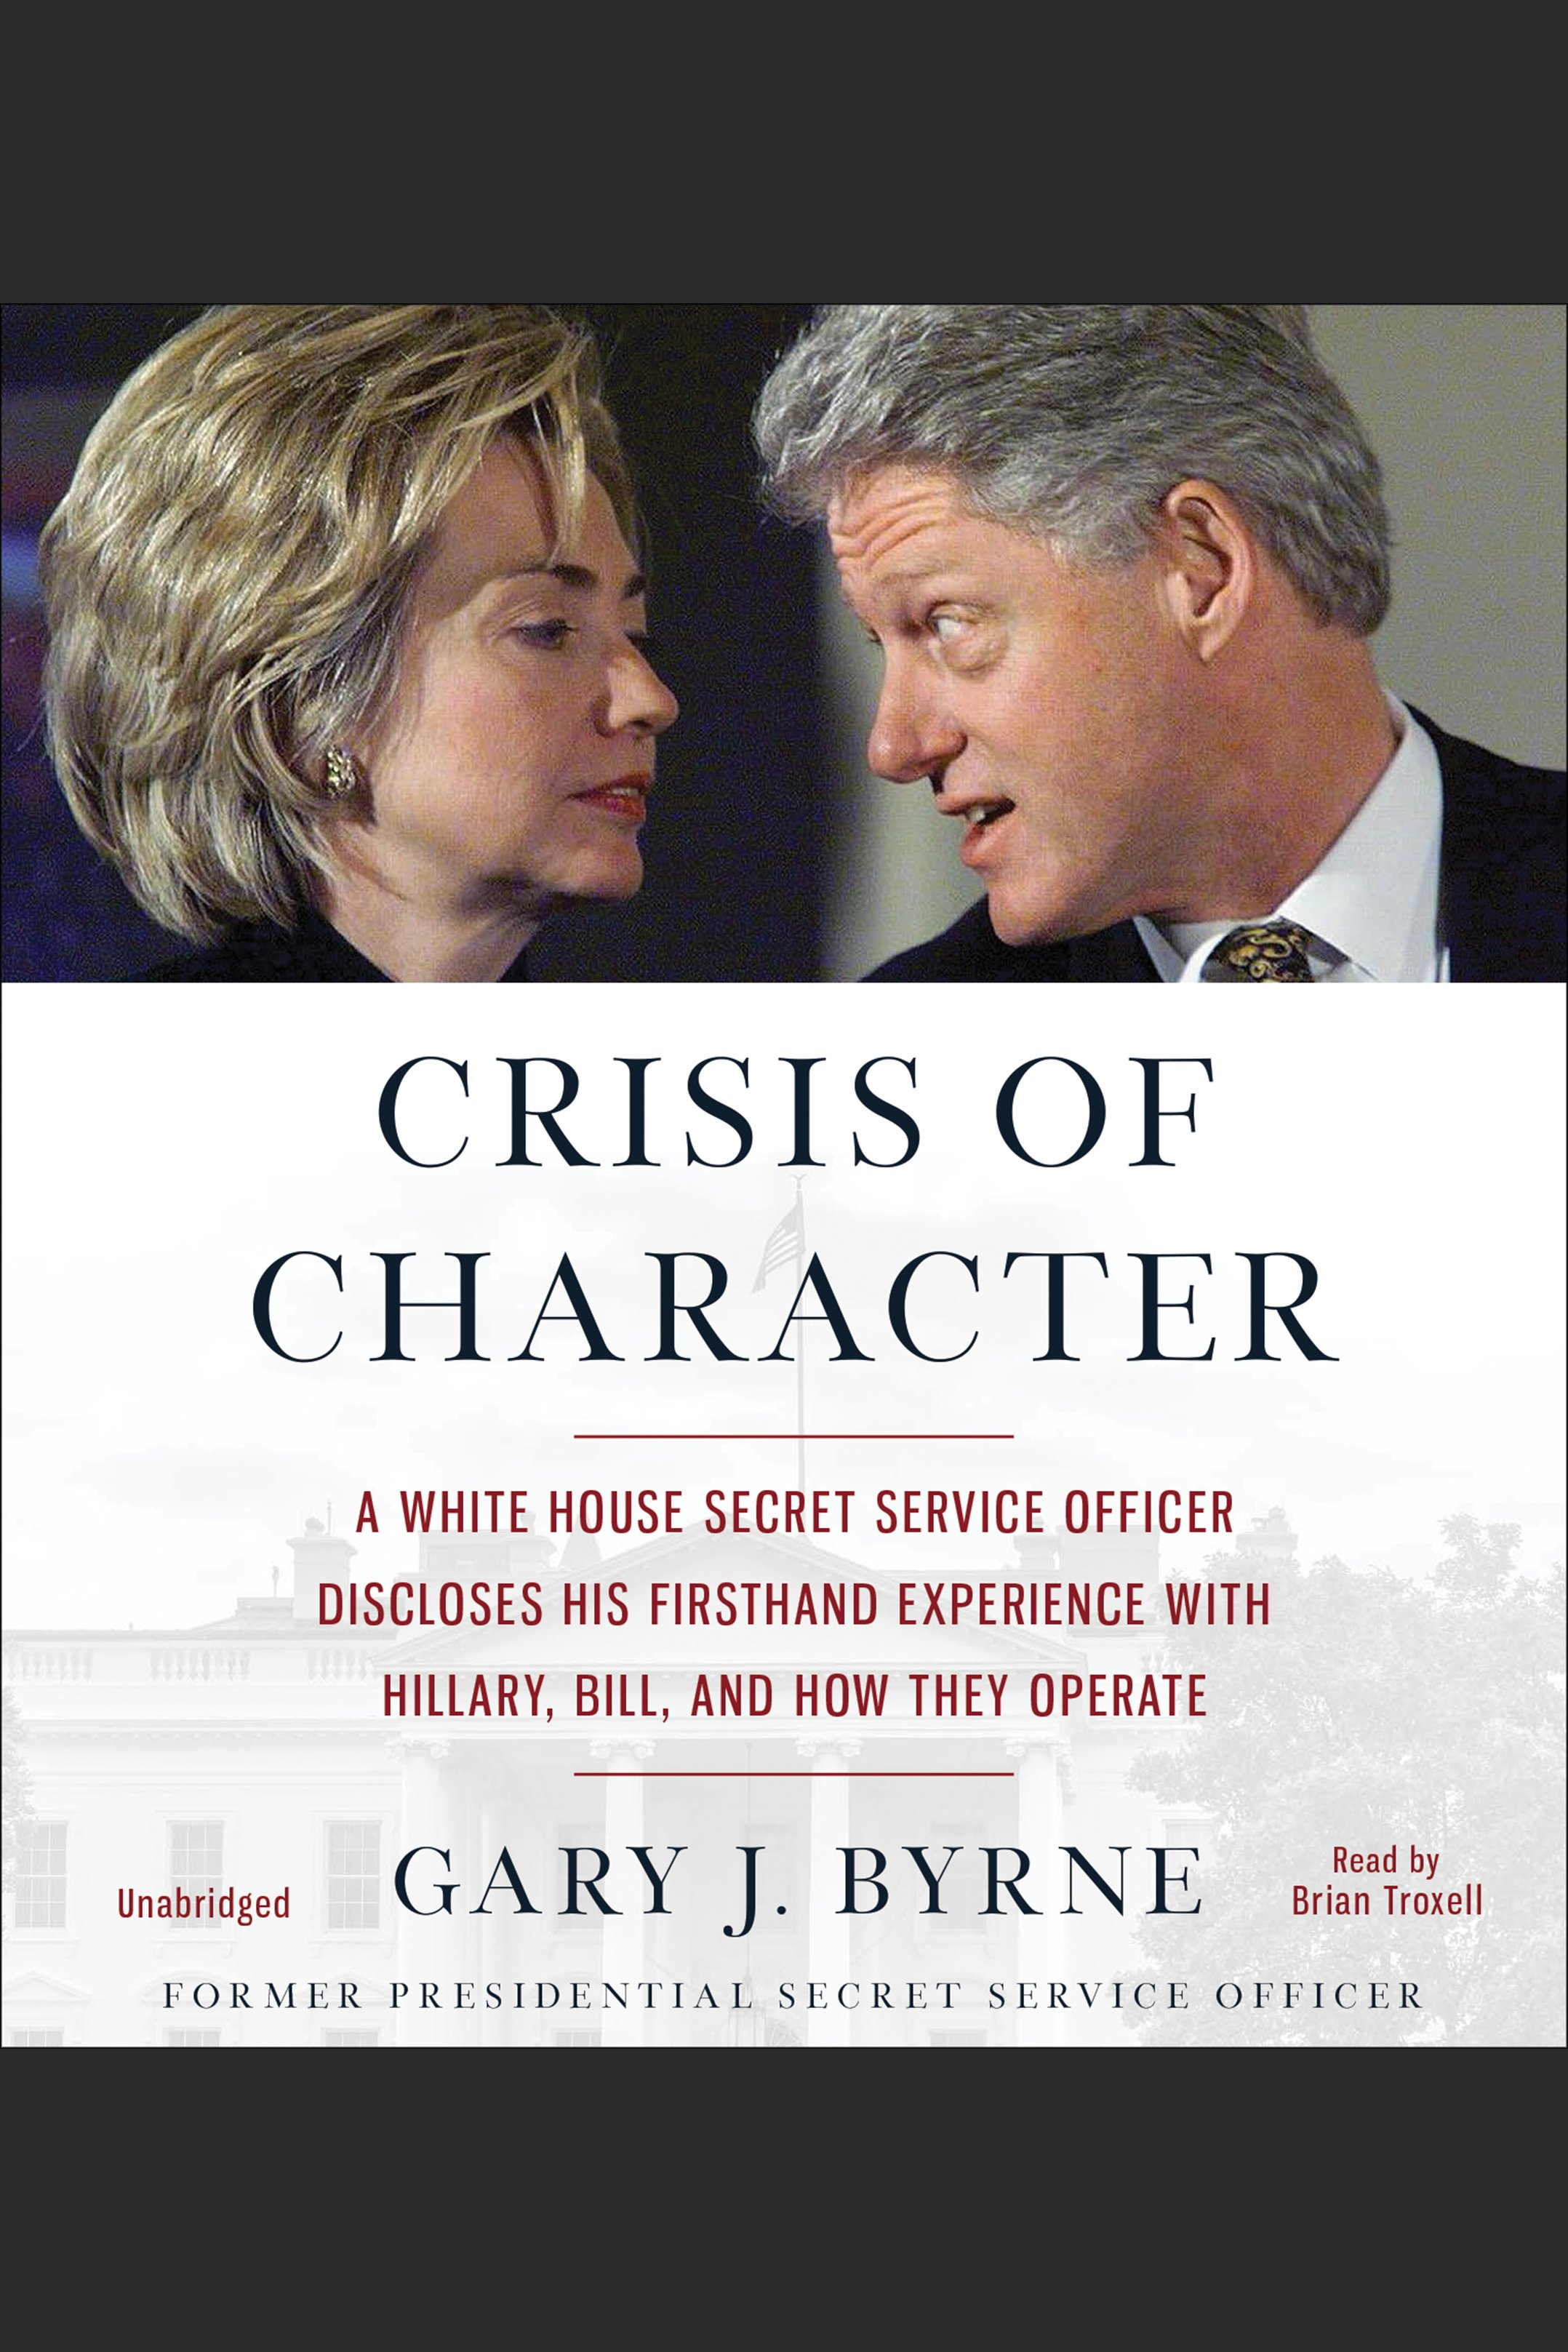 Crisis of Character A White House Secret Service Officer Discloses His Firsthand Experience with Hillary, Bill, and How They Operate